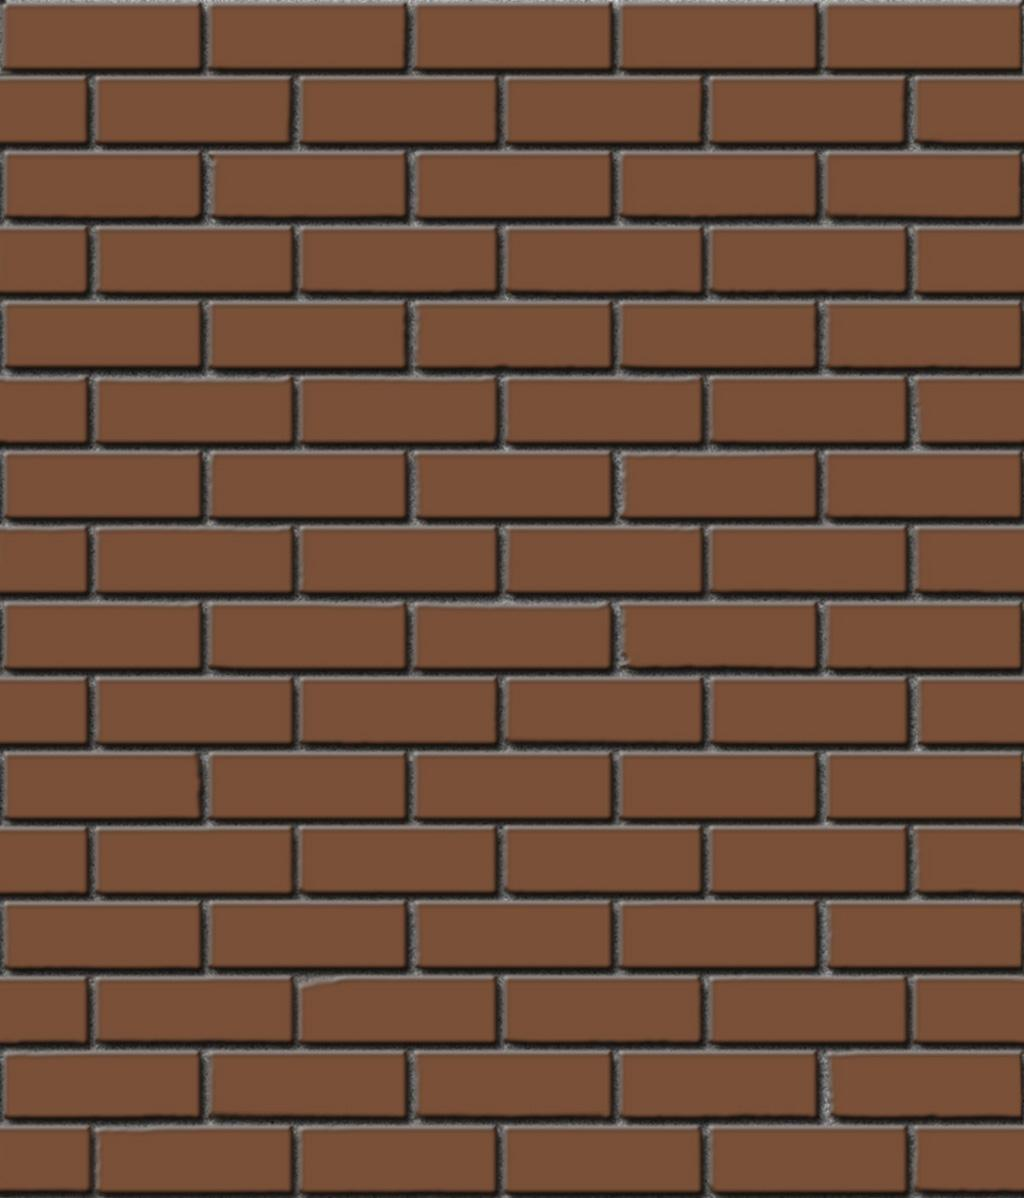 Brick Wall Texture Photo Image Bricks Masonry